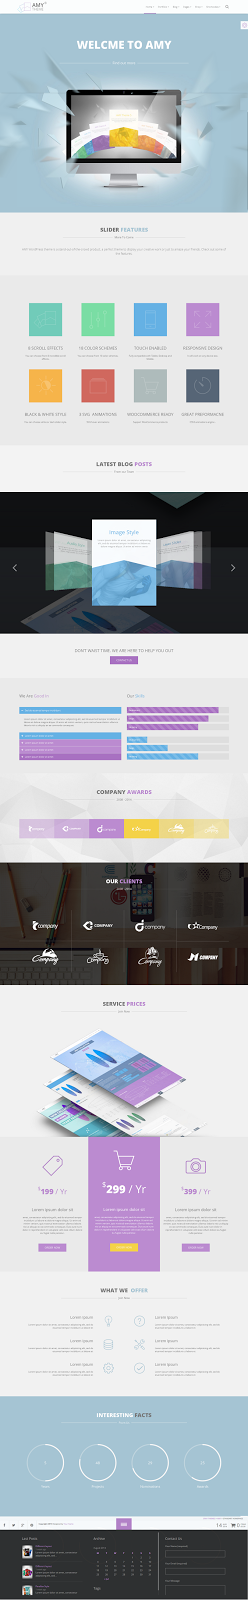 Free WP One Page Template